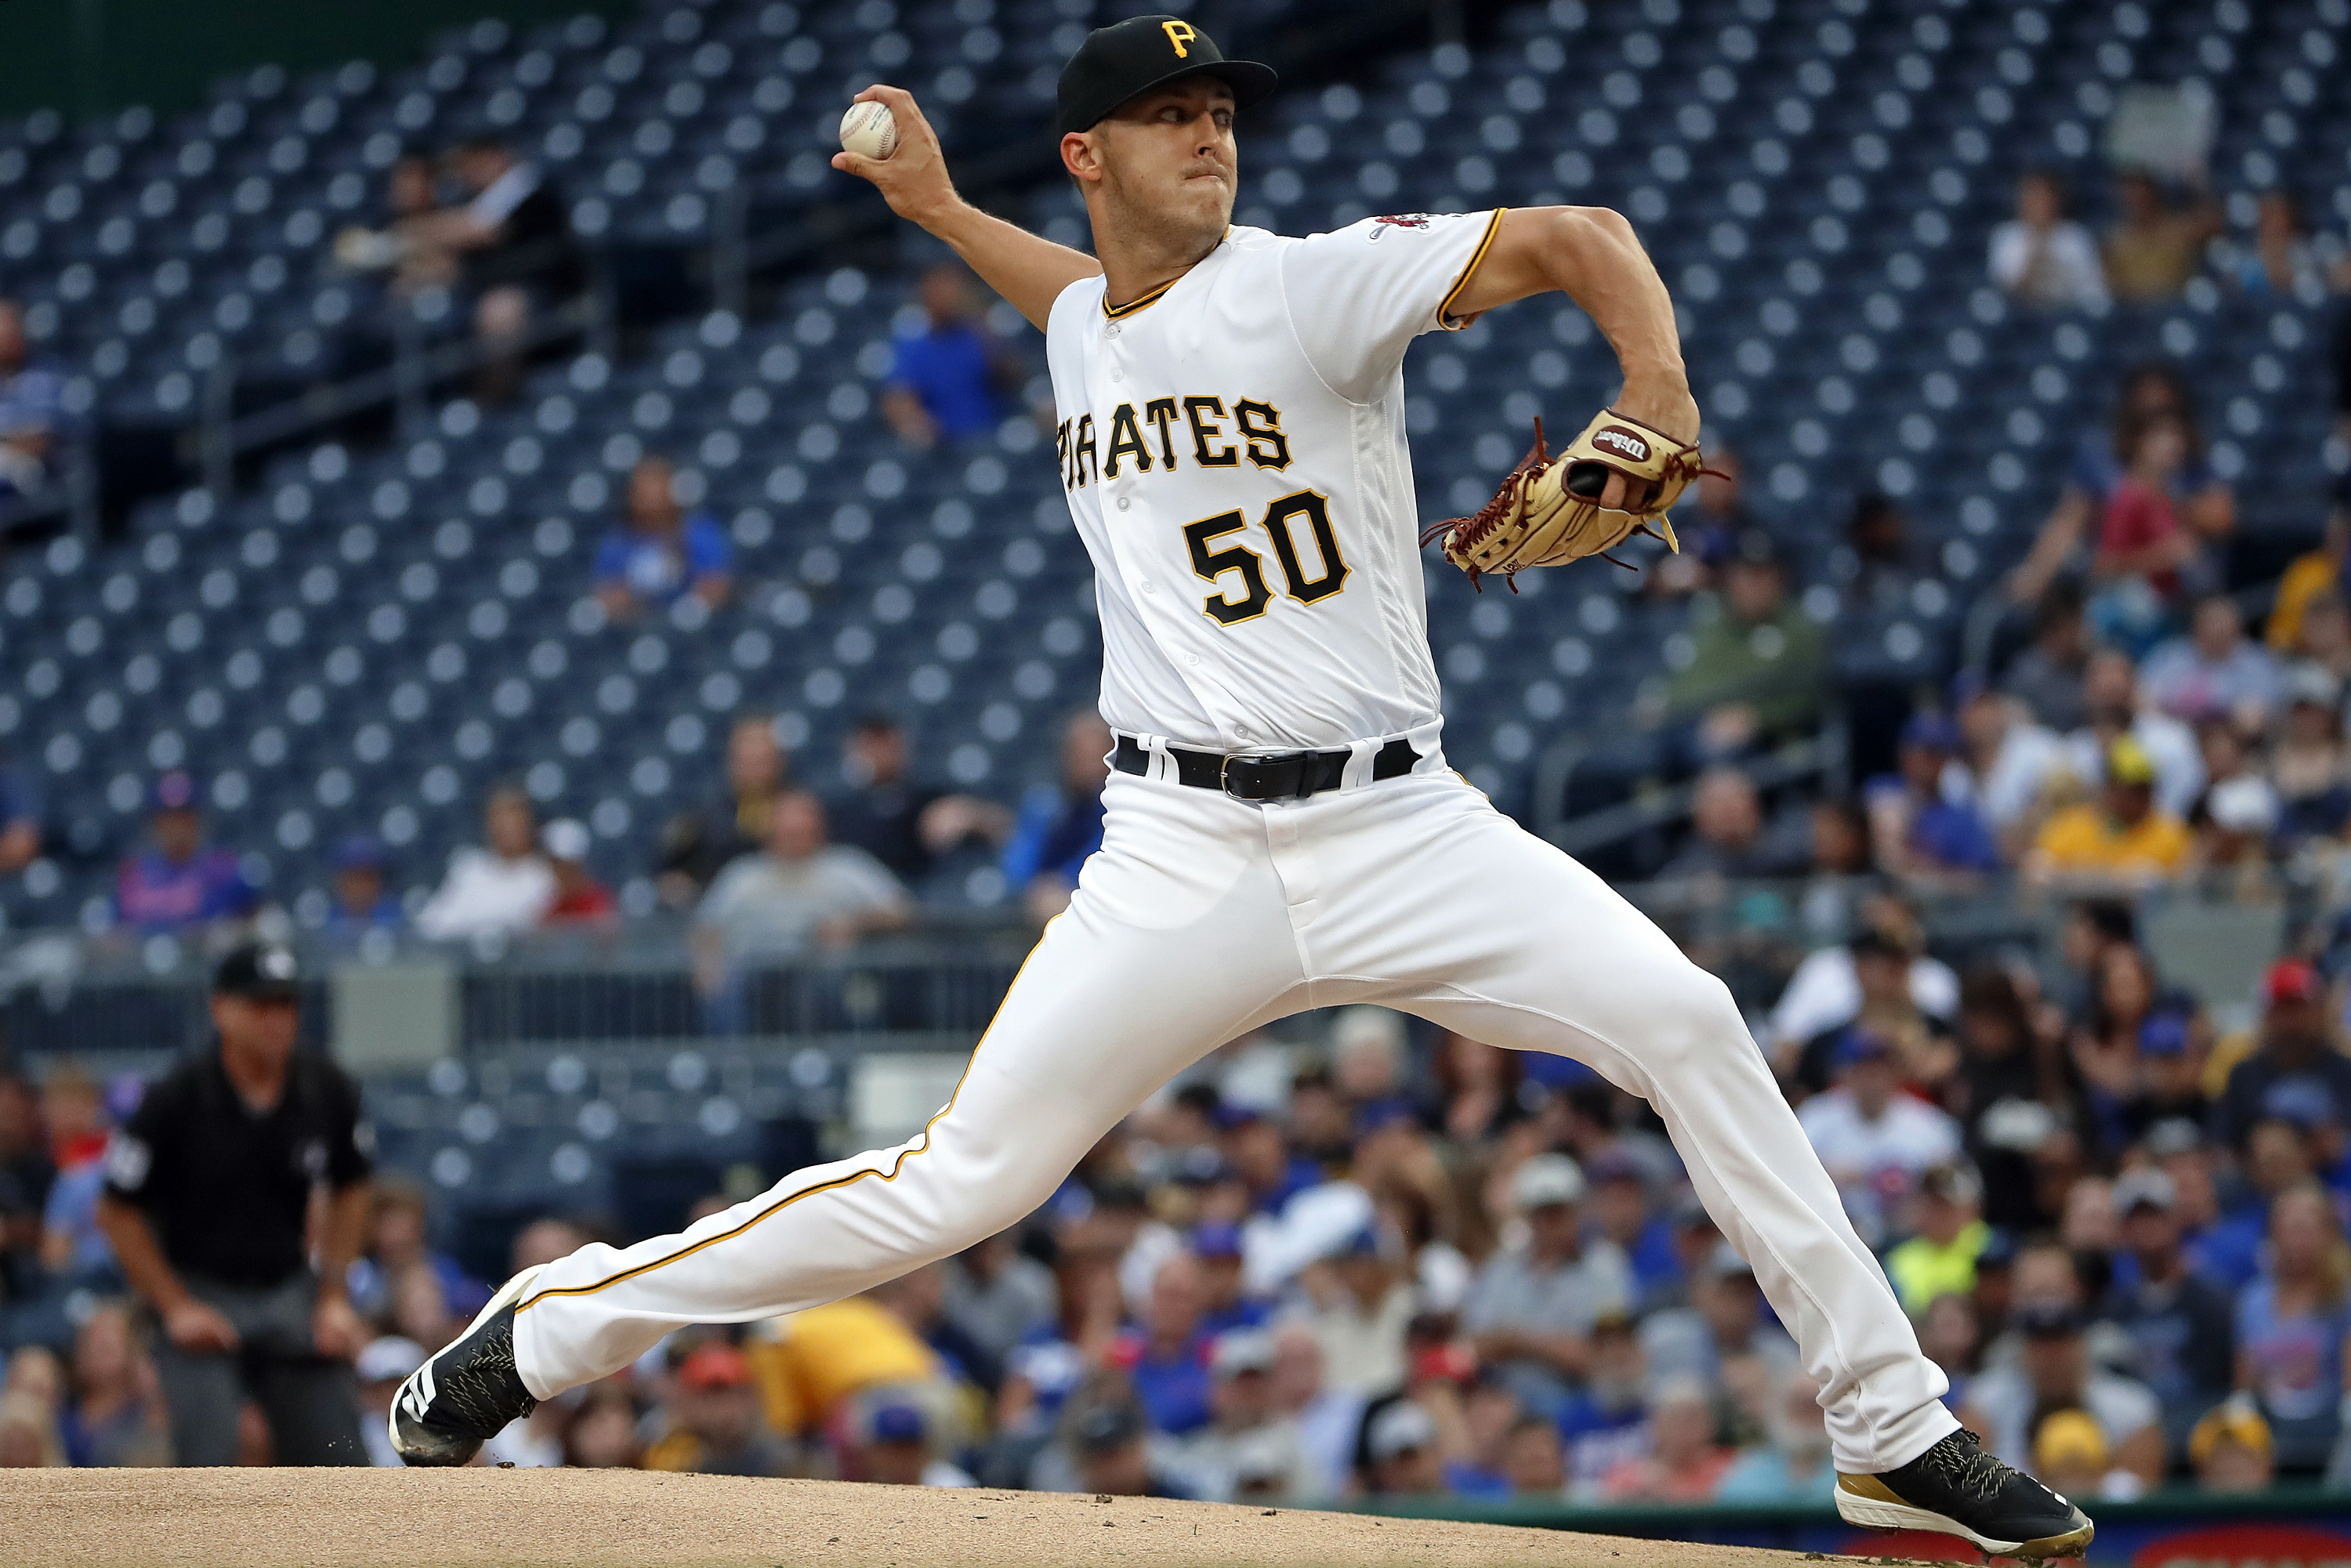 Taillon, Bettis face off after battling cancer